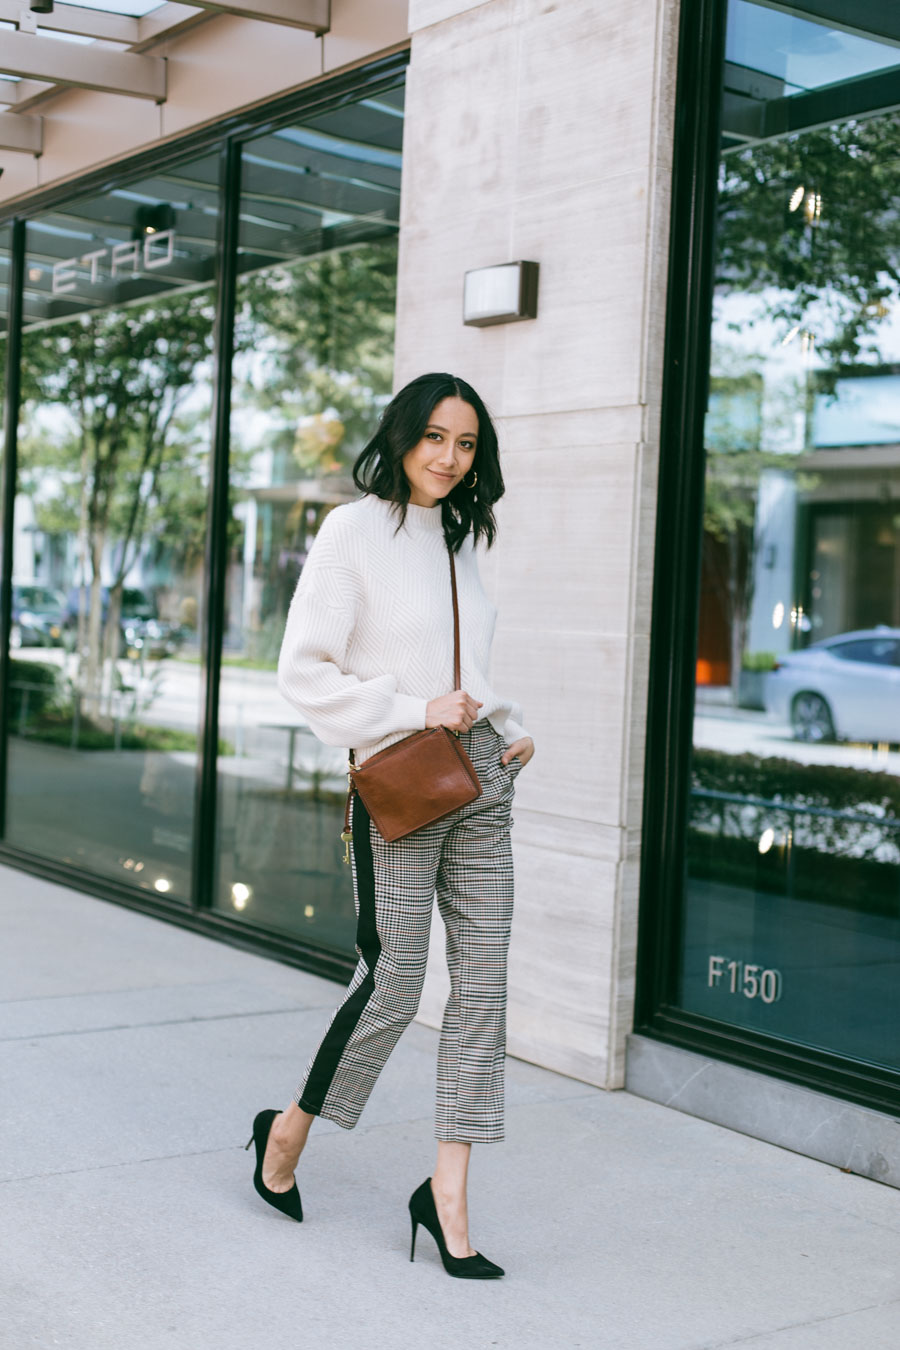 Fashion blogger Lilly Beltran wearing brown plaid pants with a cream mock neck sweater and black pumps for a chic fall outfit